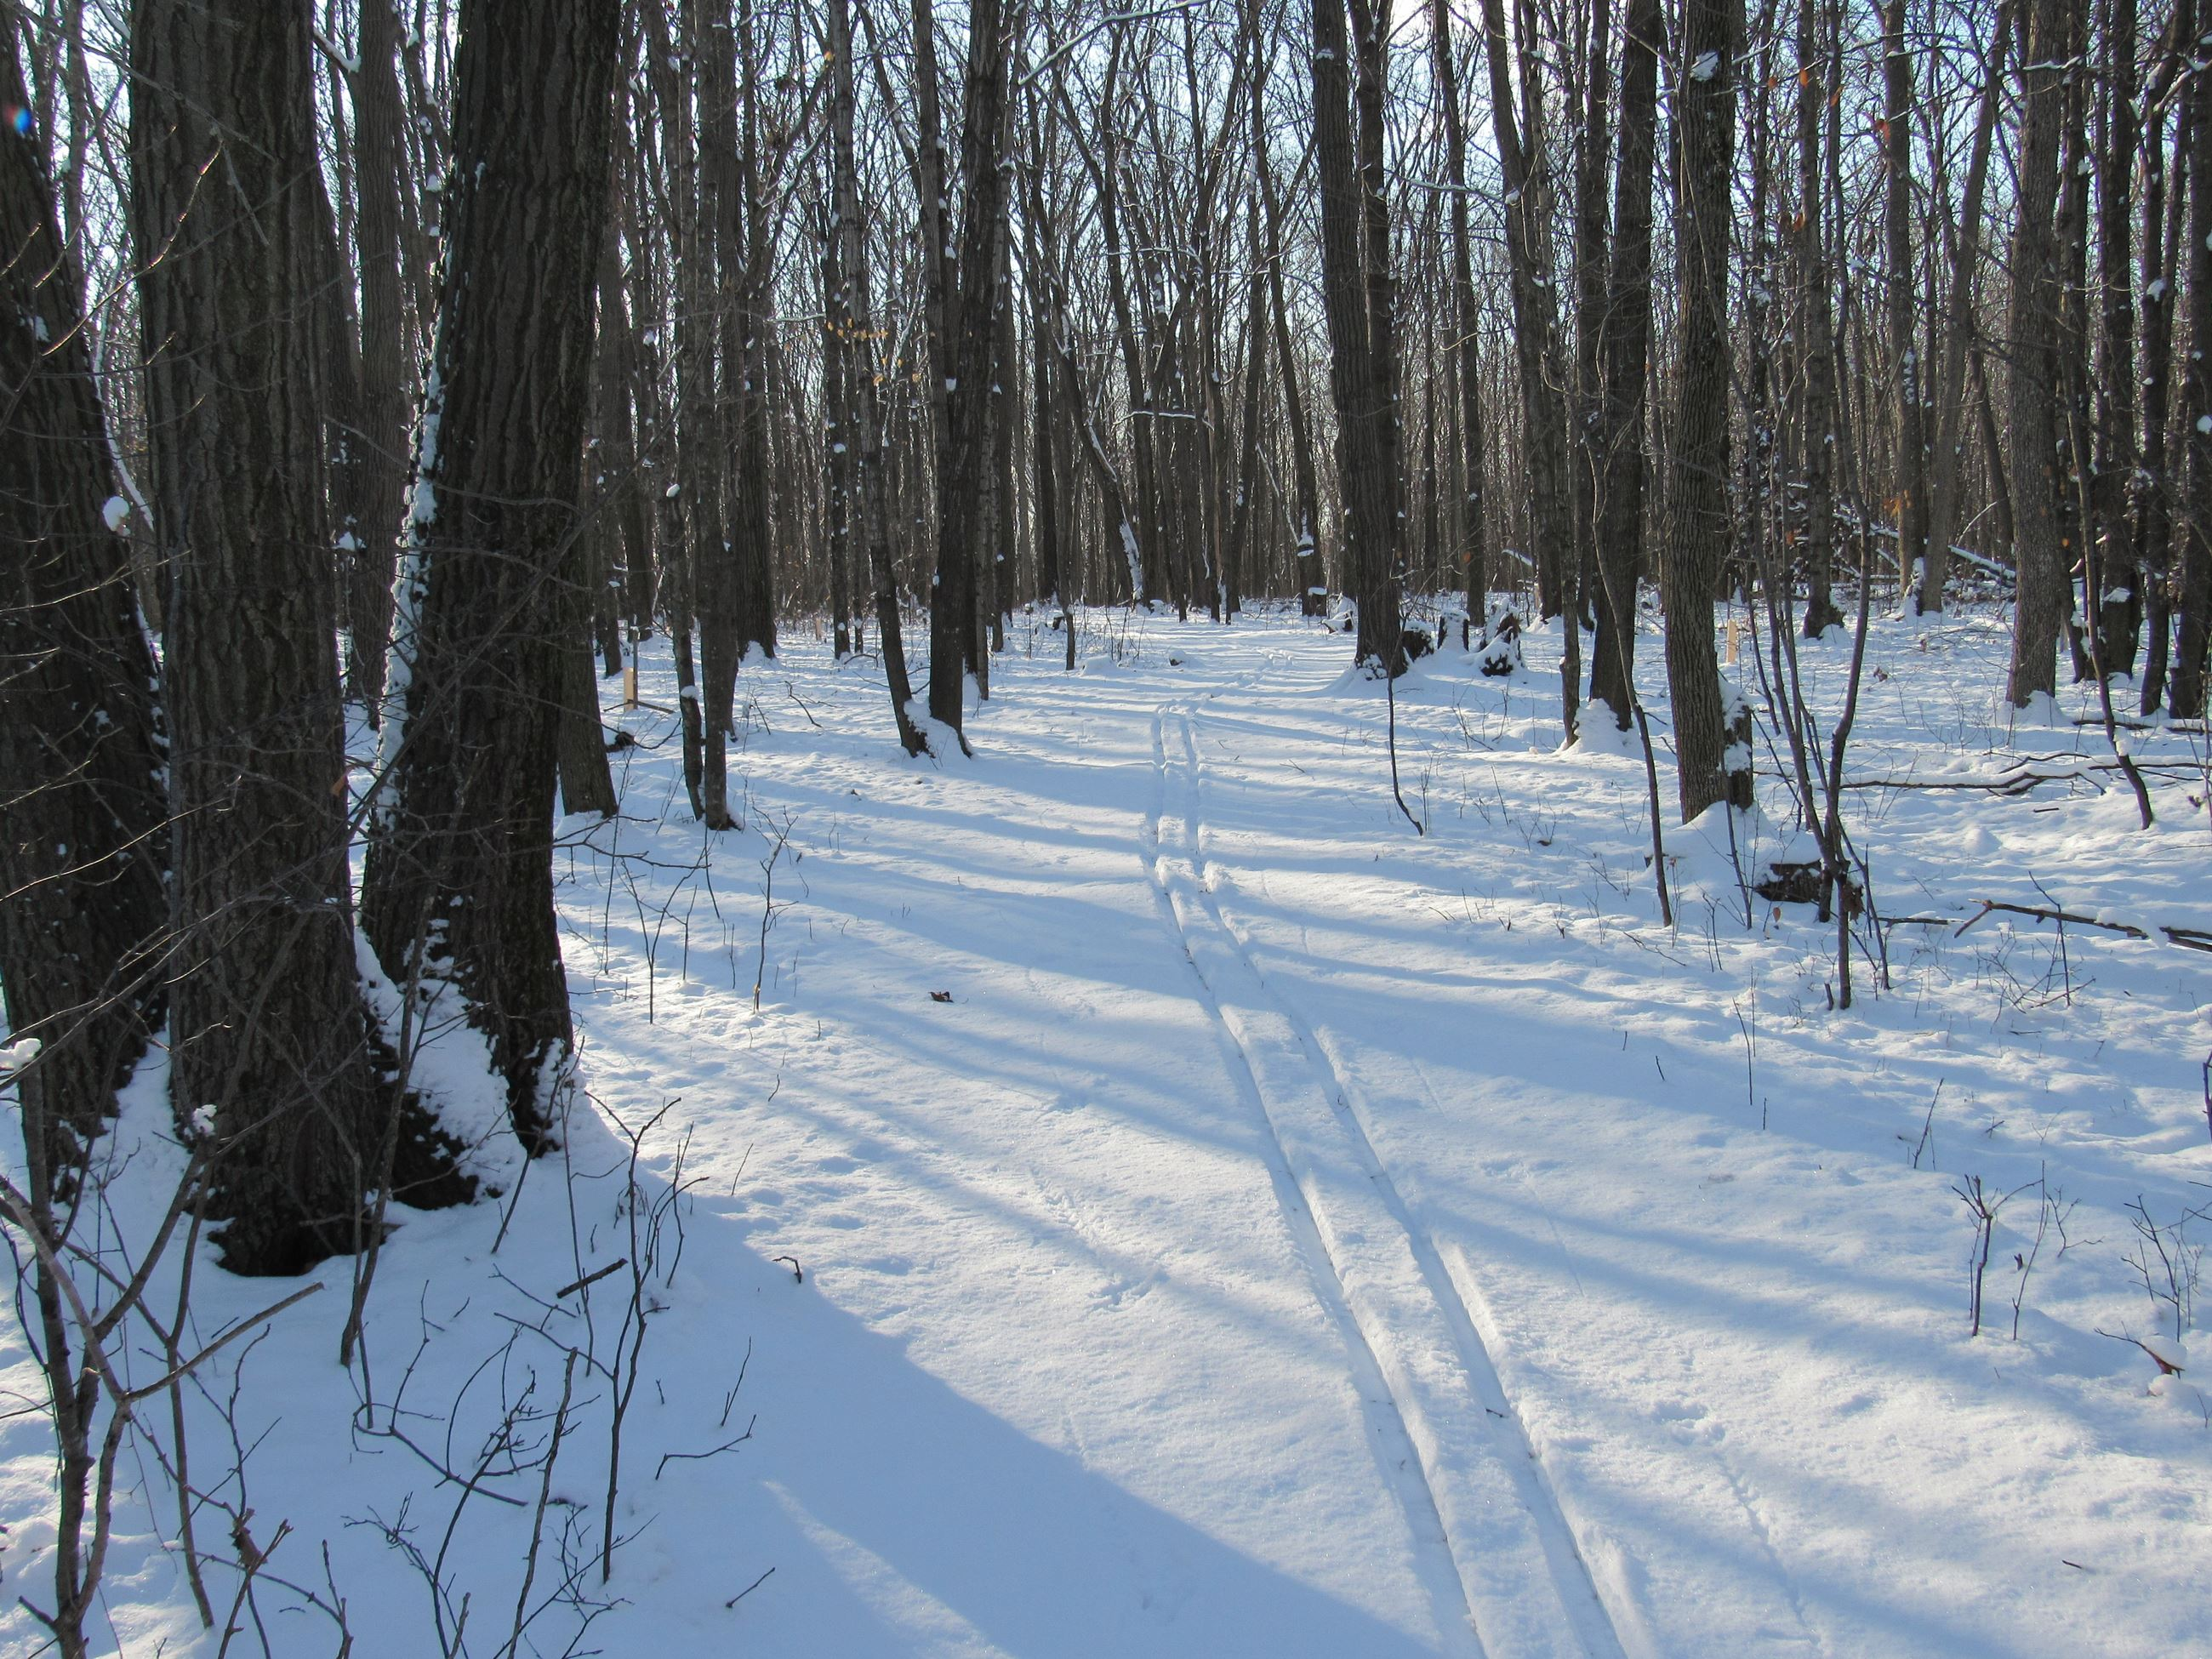 A groomed cross county ski trail in the woods